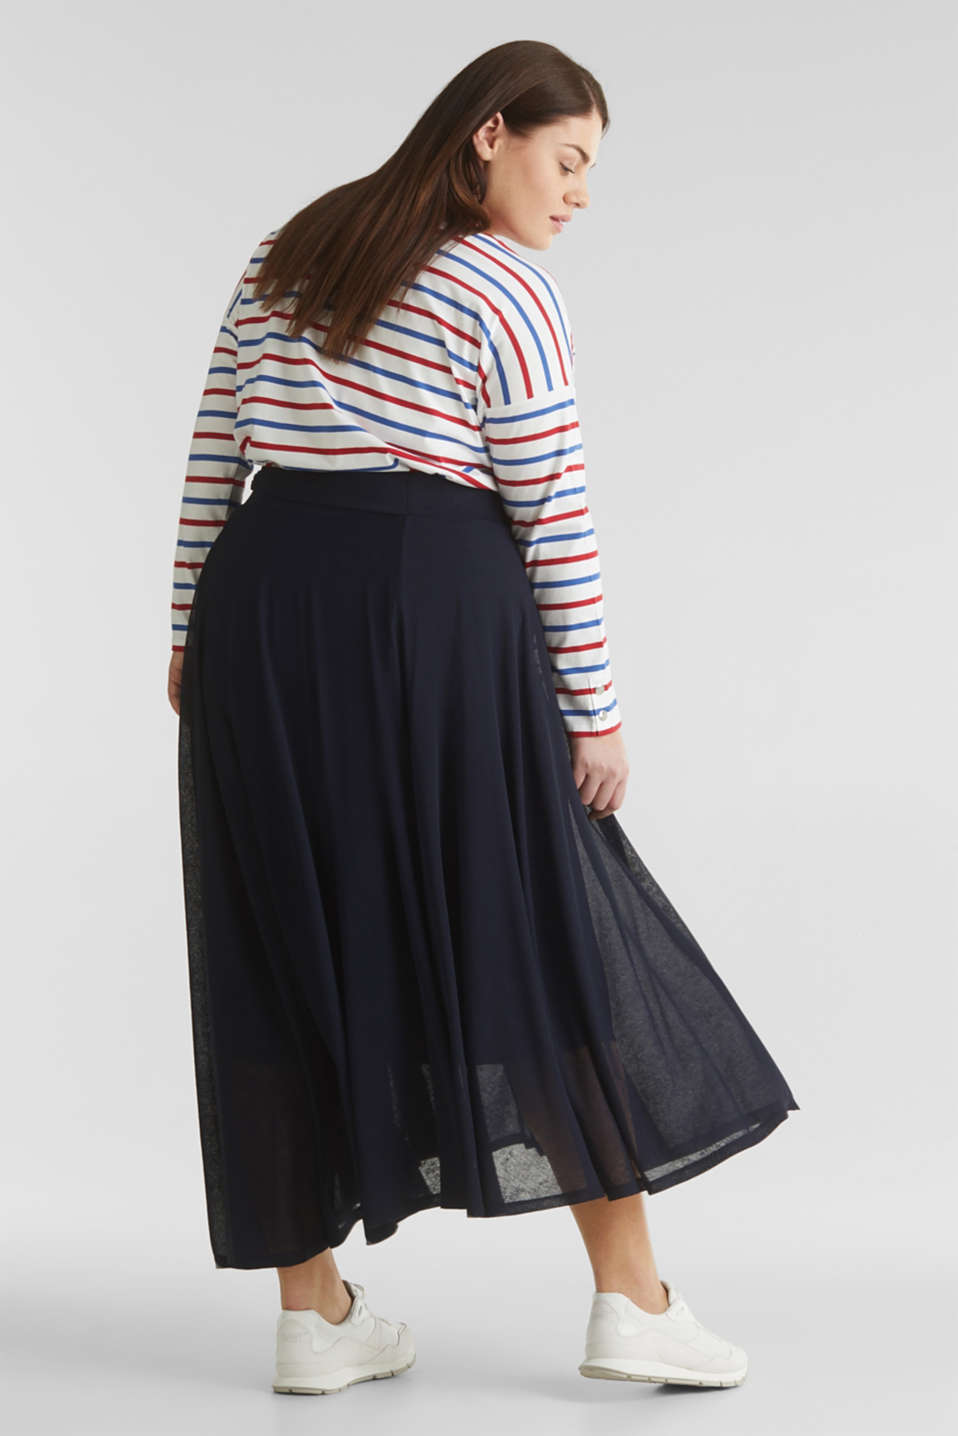 CURVY A-line jersey skirt, NAVY, detail image number 2